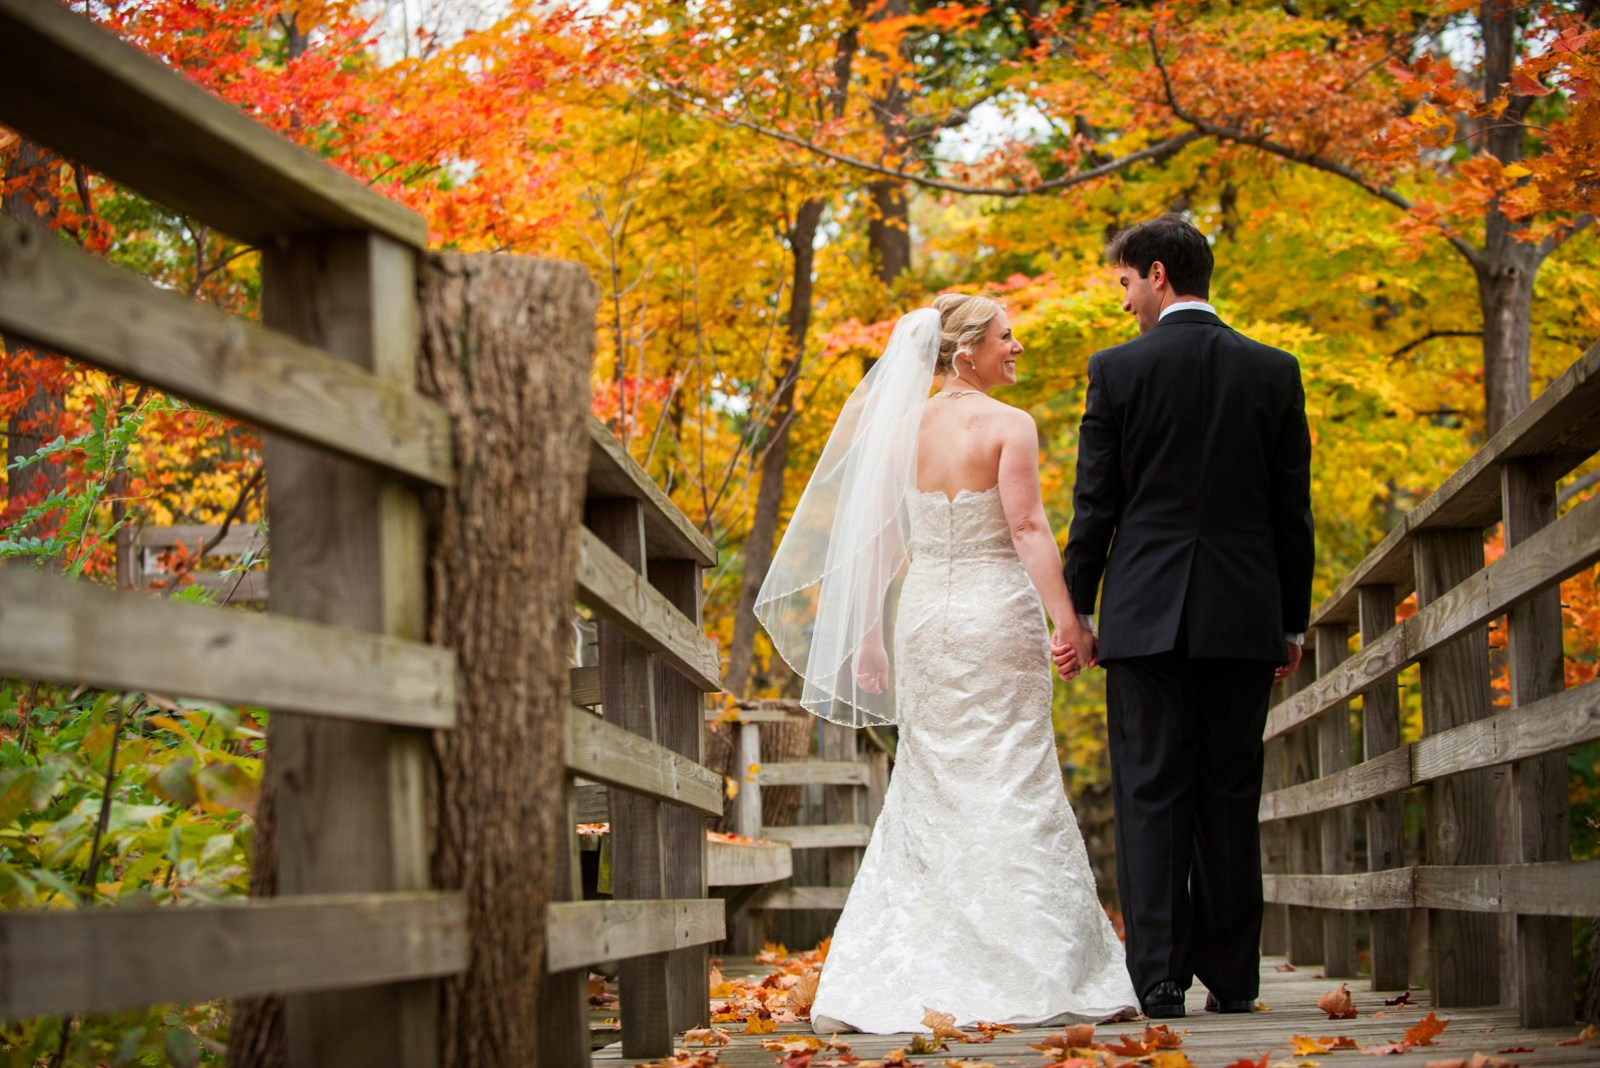 Bride and Groom walking down path hand in hand during their Fall outdoor wedding ceremony